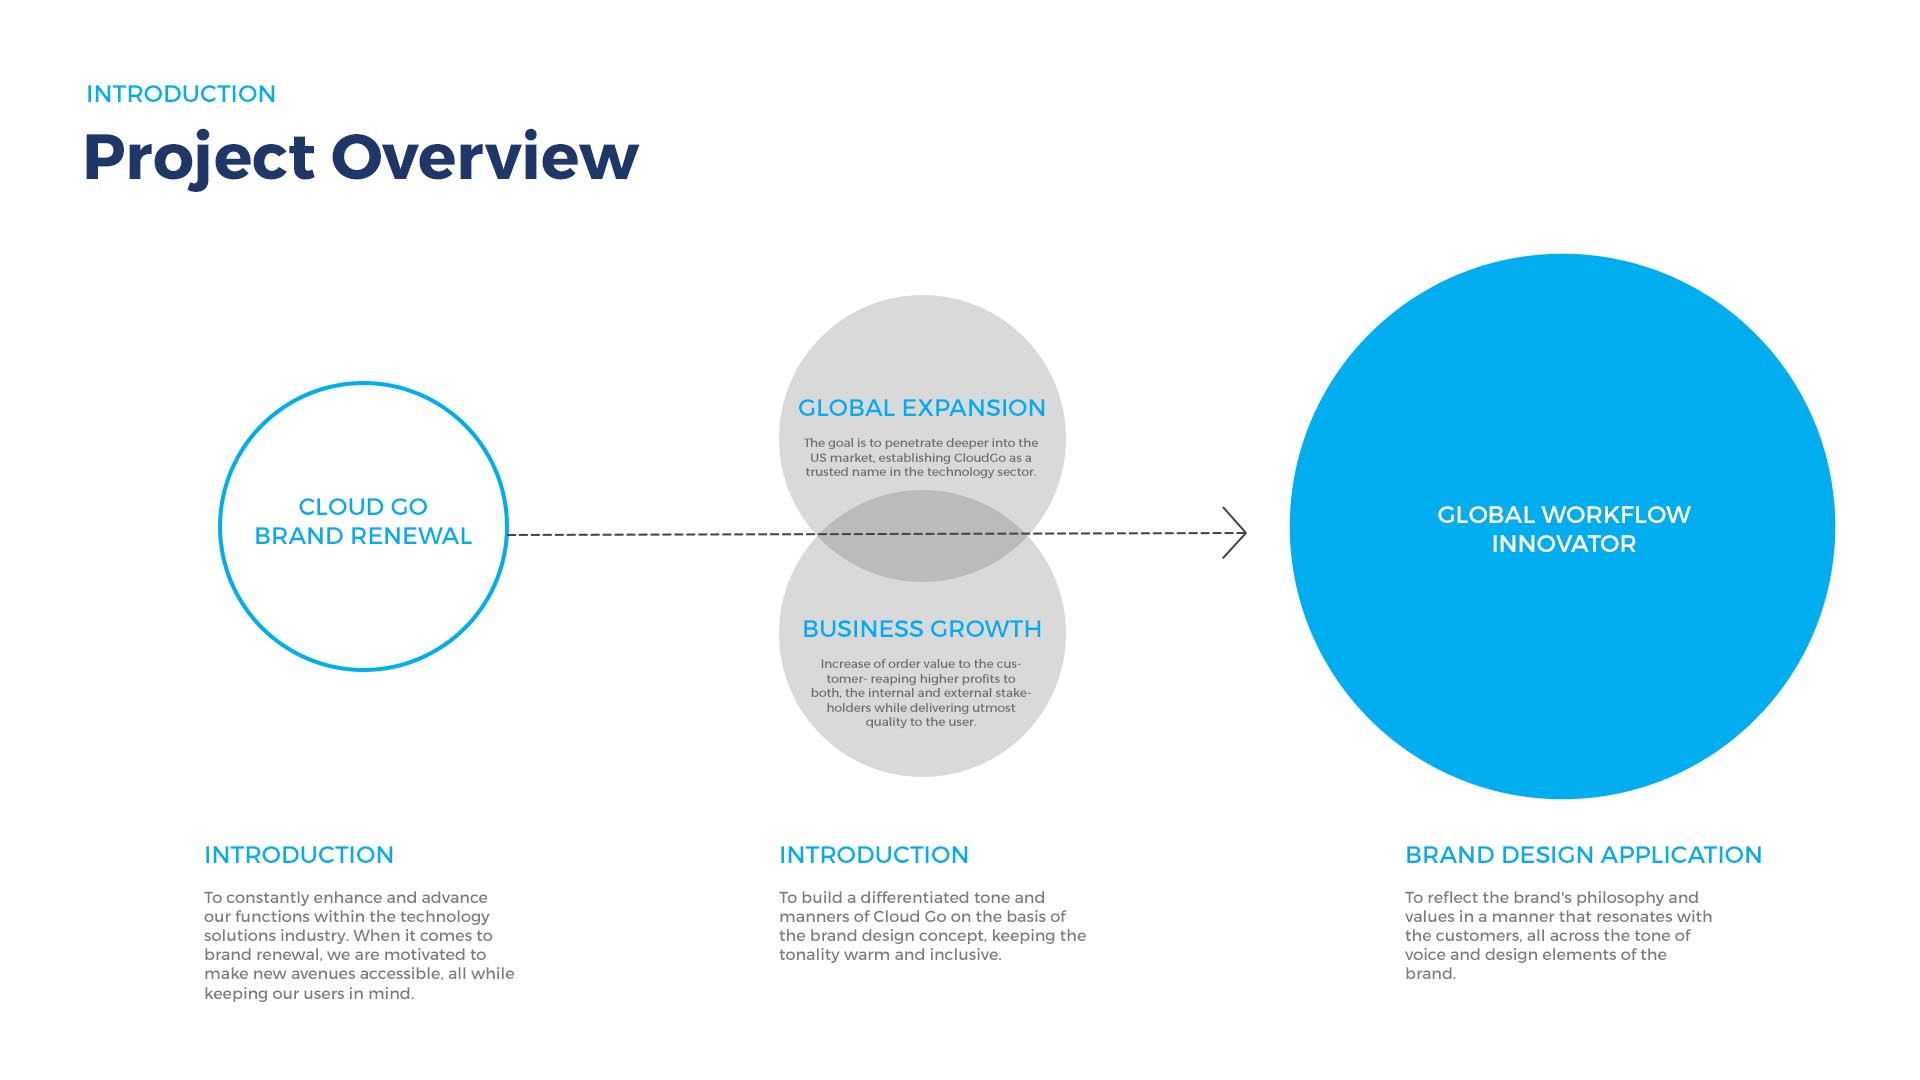 Cloud Go Project Overview